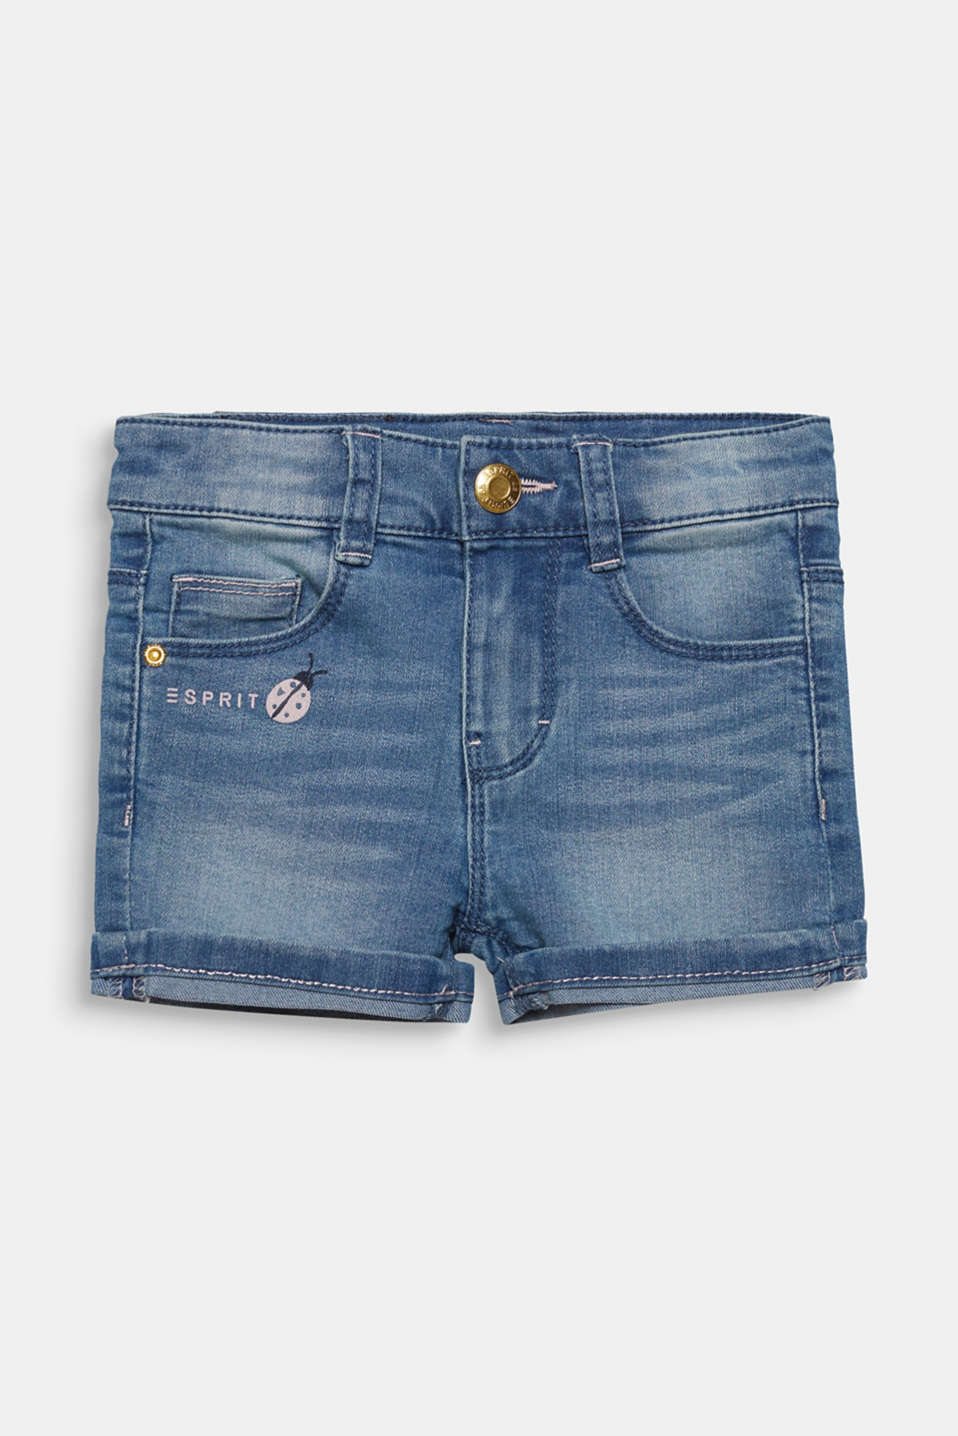 Denim shorts with turn-up hems, adjustable waistband, LIGHT INDIGO D, detail image number 0